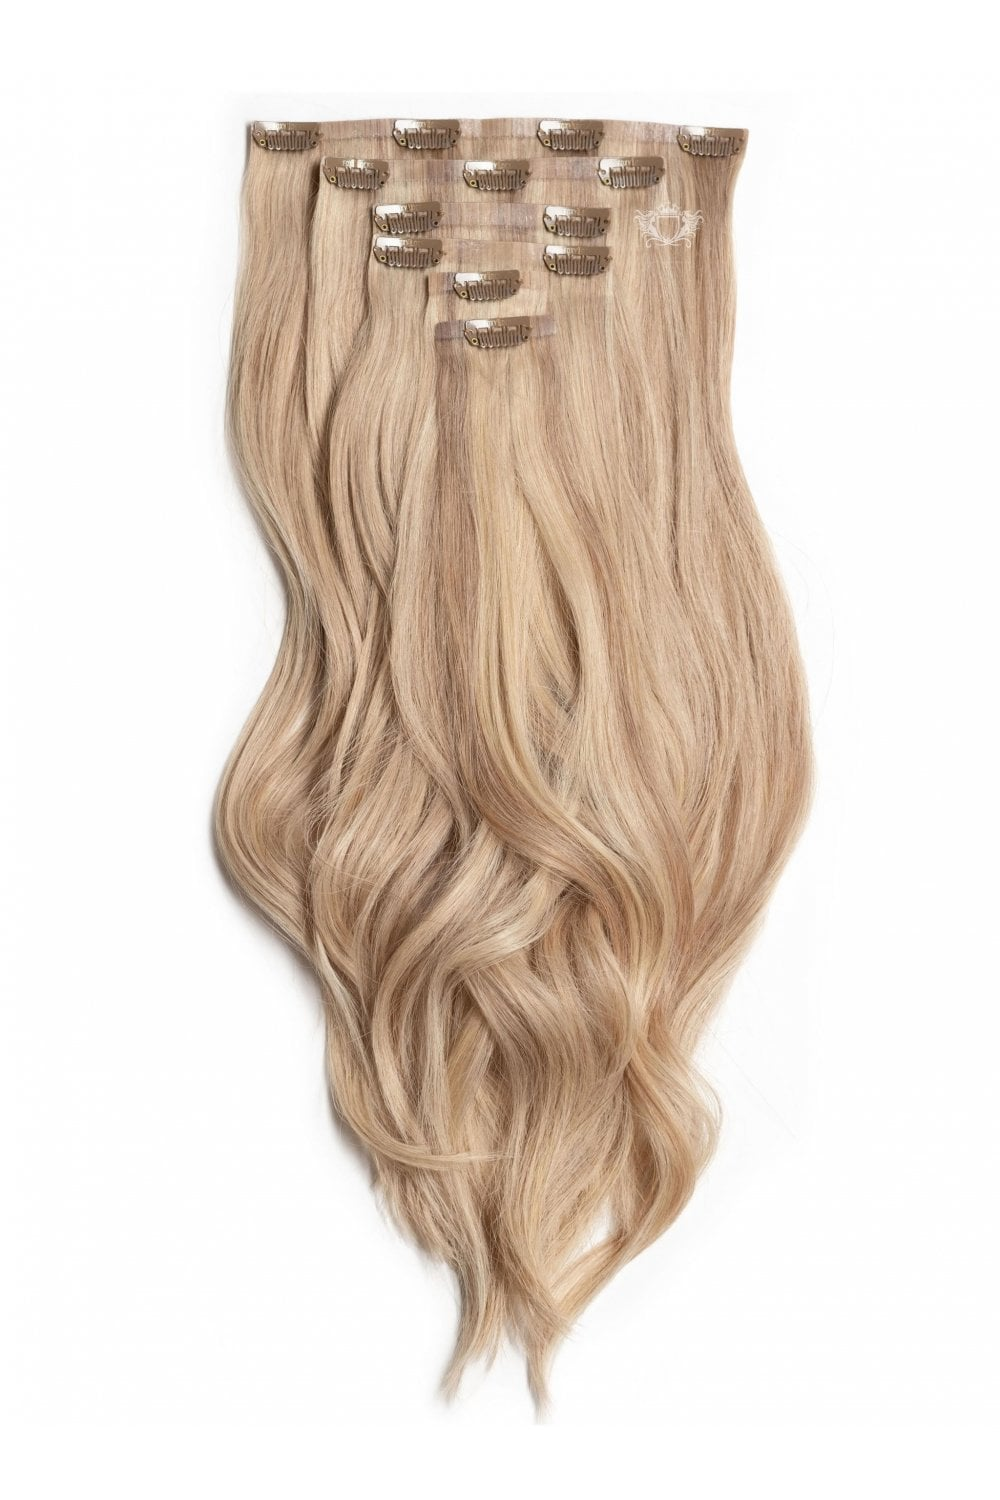 Blonde Extension Hair Human Prices Of Remy Hair